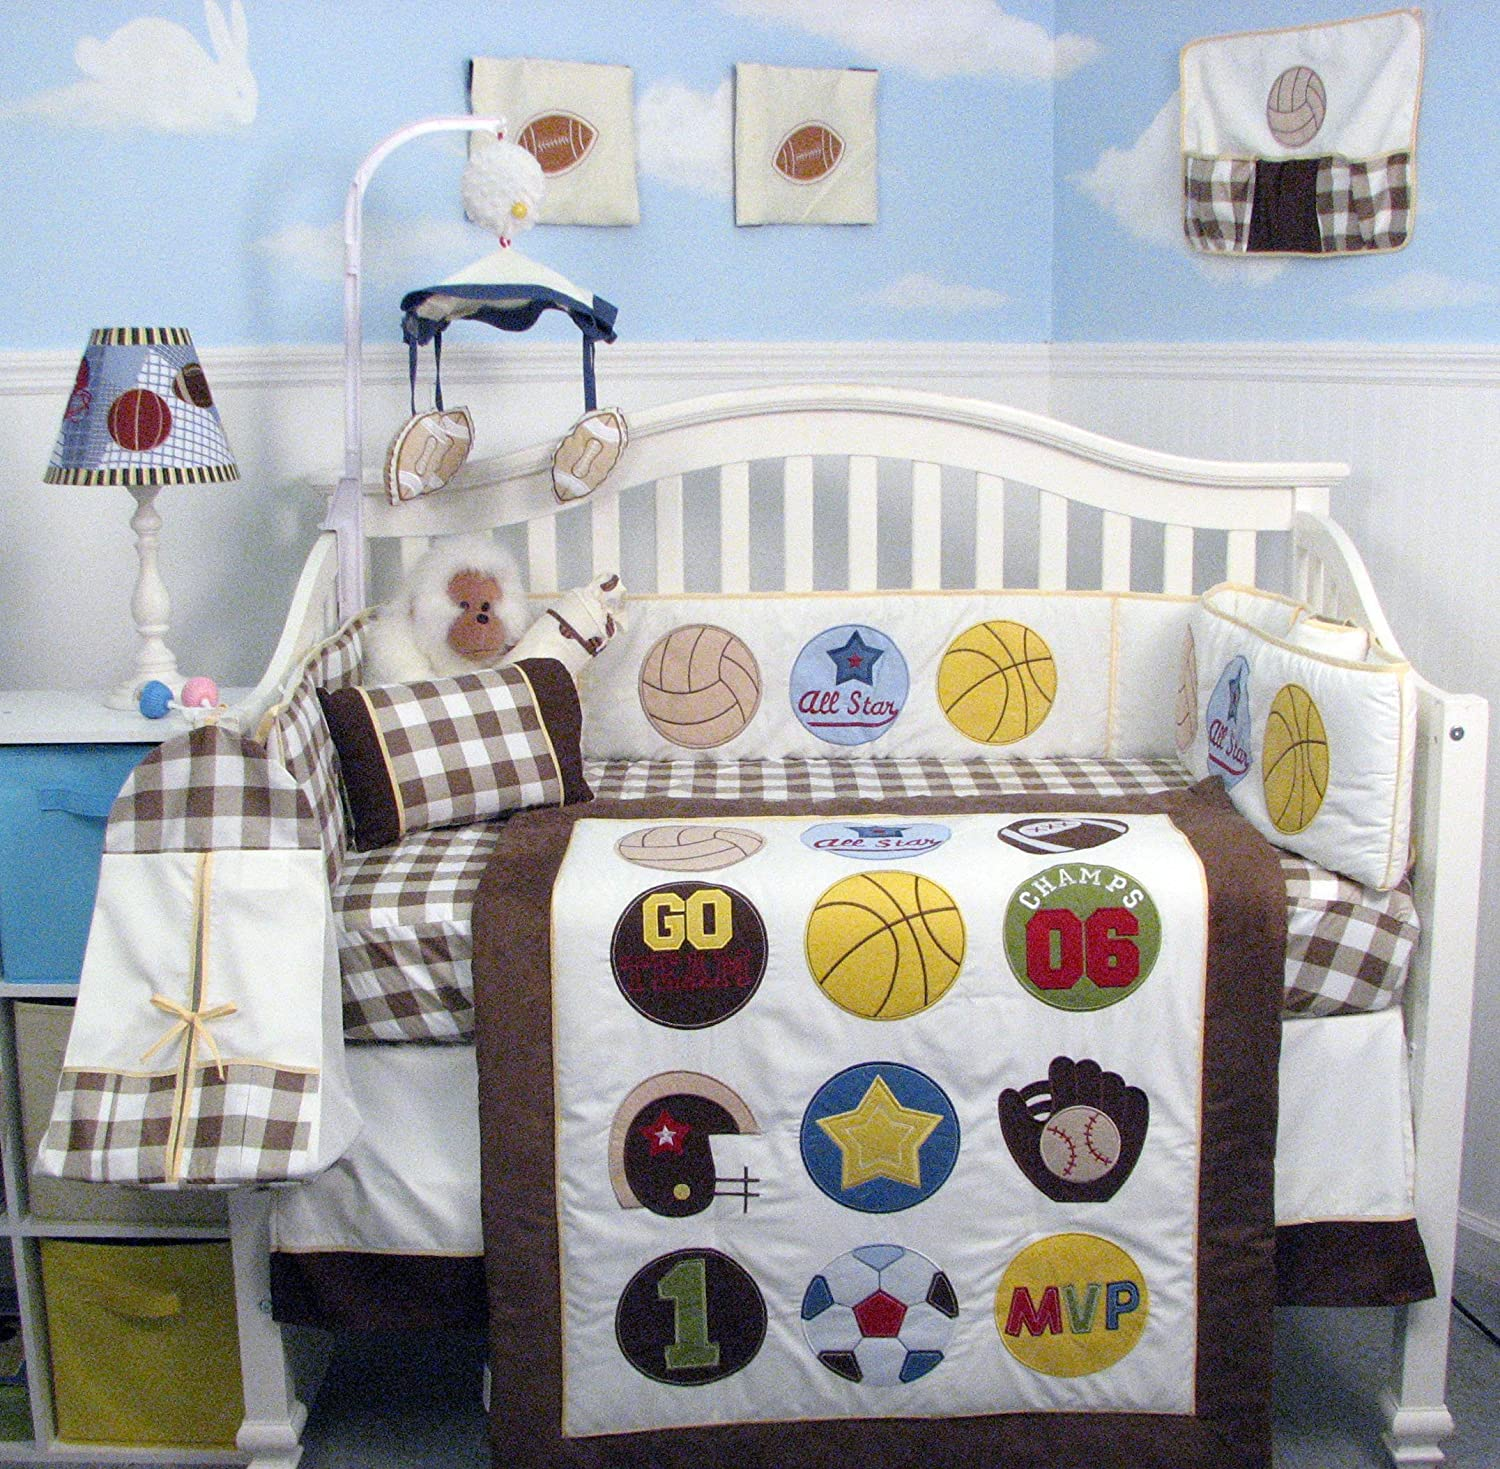 Super Sport Fan (cream and brown) Baby Crib Nursery Bedding Set 14 pcs included Diaper Bag with Changing Pad & Bottle Case by SoHo Designs   B00IMKTZOM